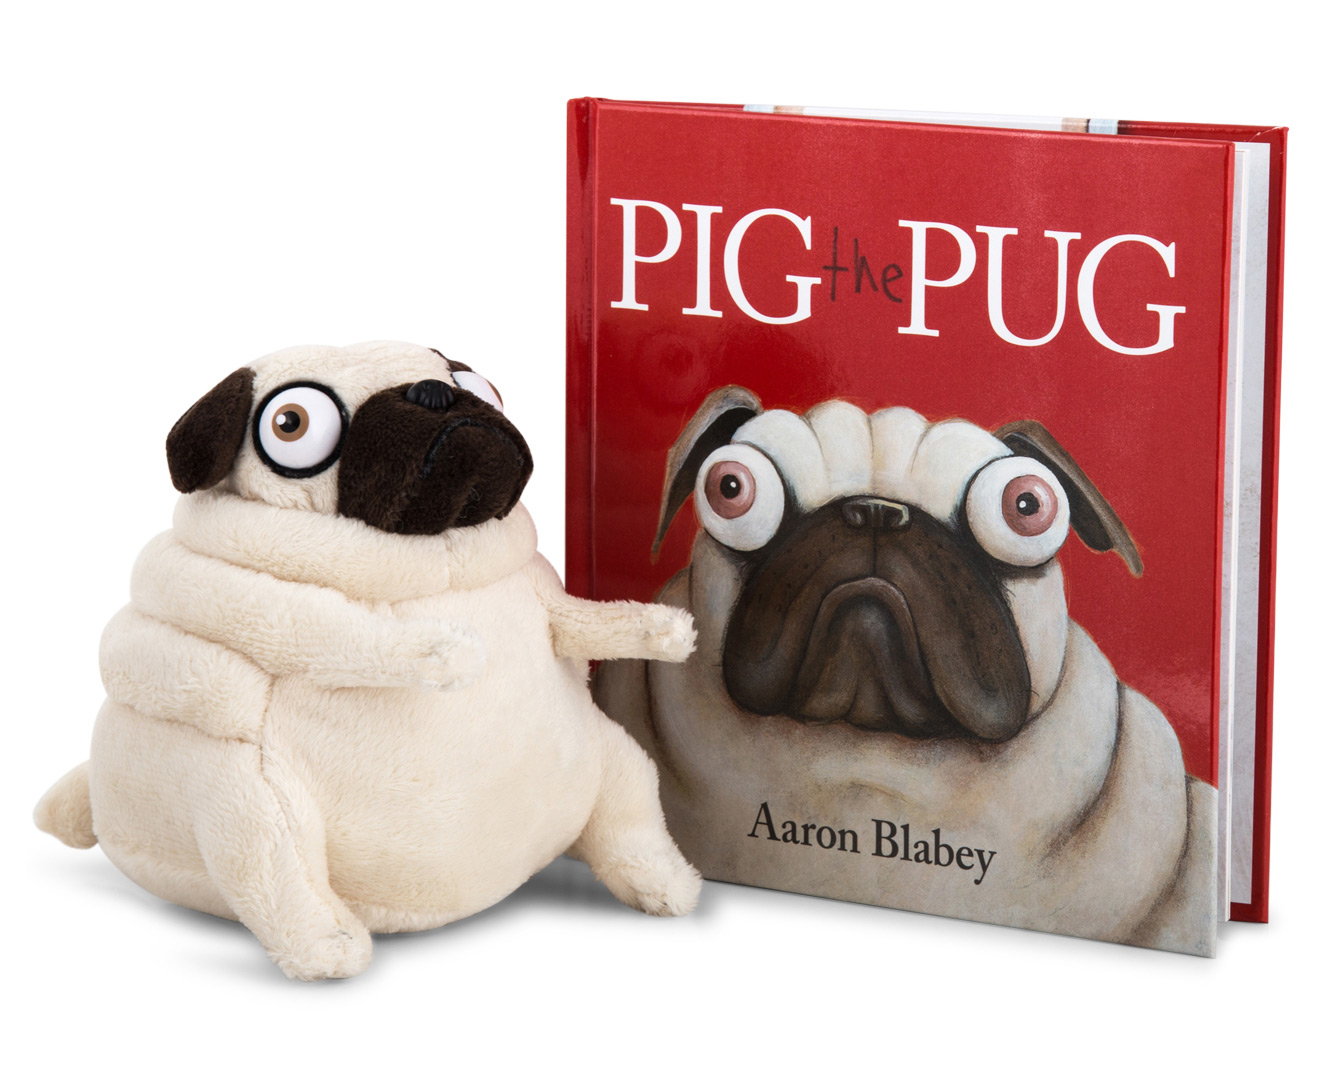 Pig the Pug Boxed Book Set w/ Plush Toy | Great daily ...